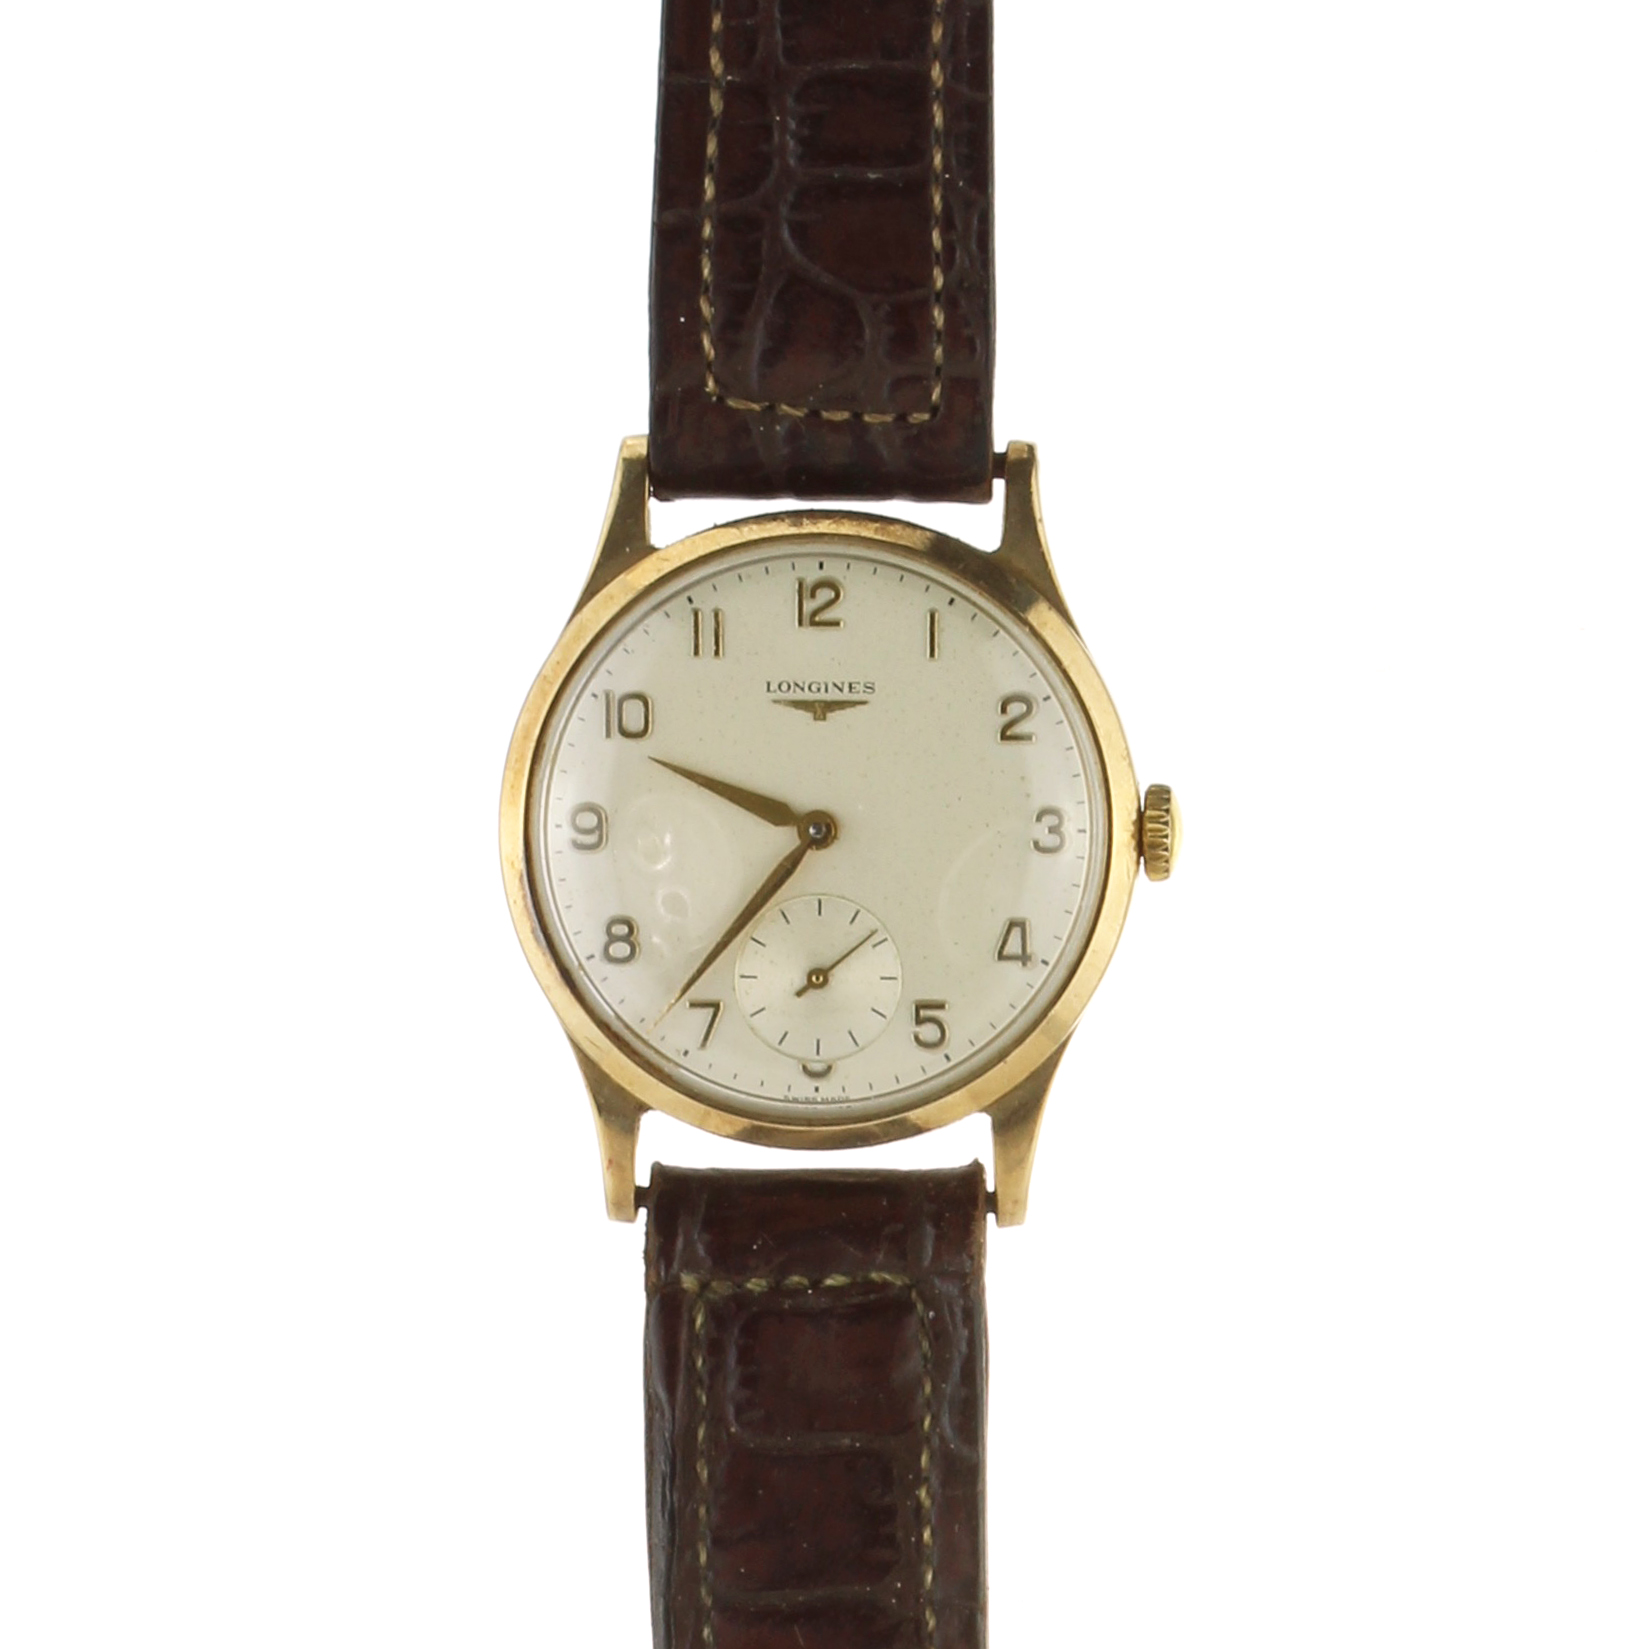 LONGINES A 9ct yellow gold wristwatch by Longines on a leather strap.